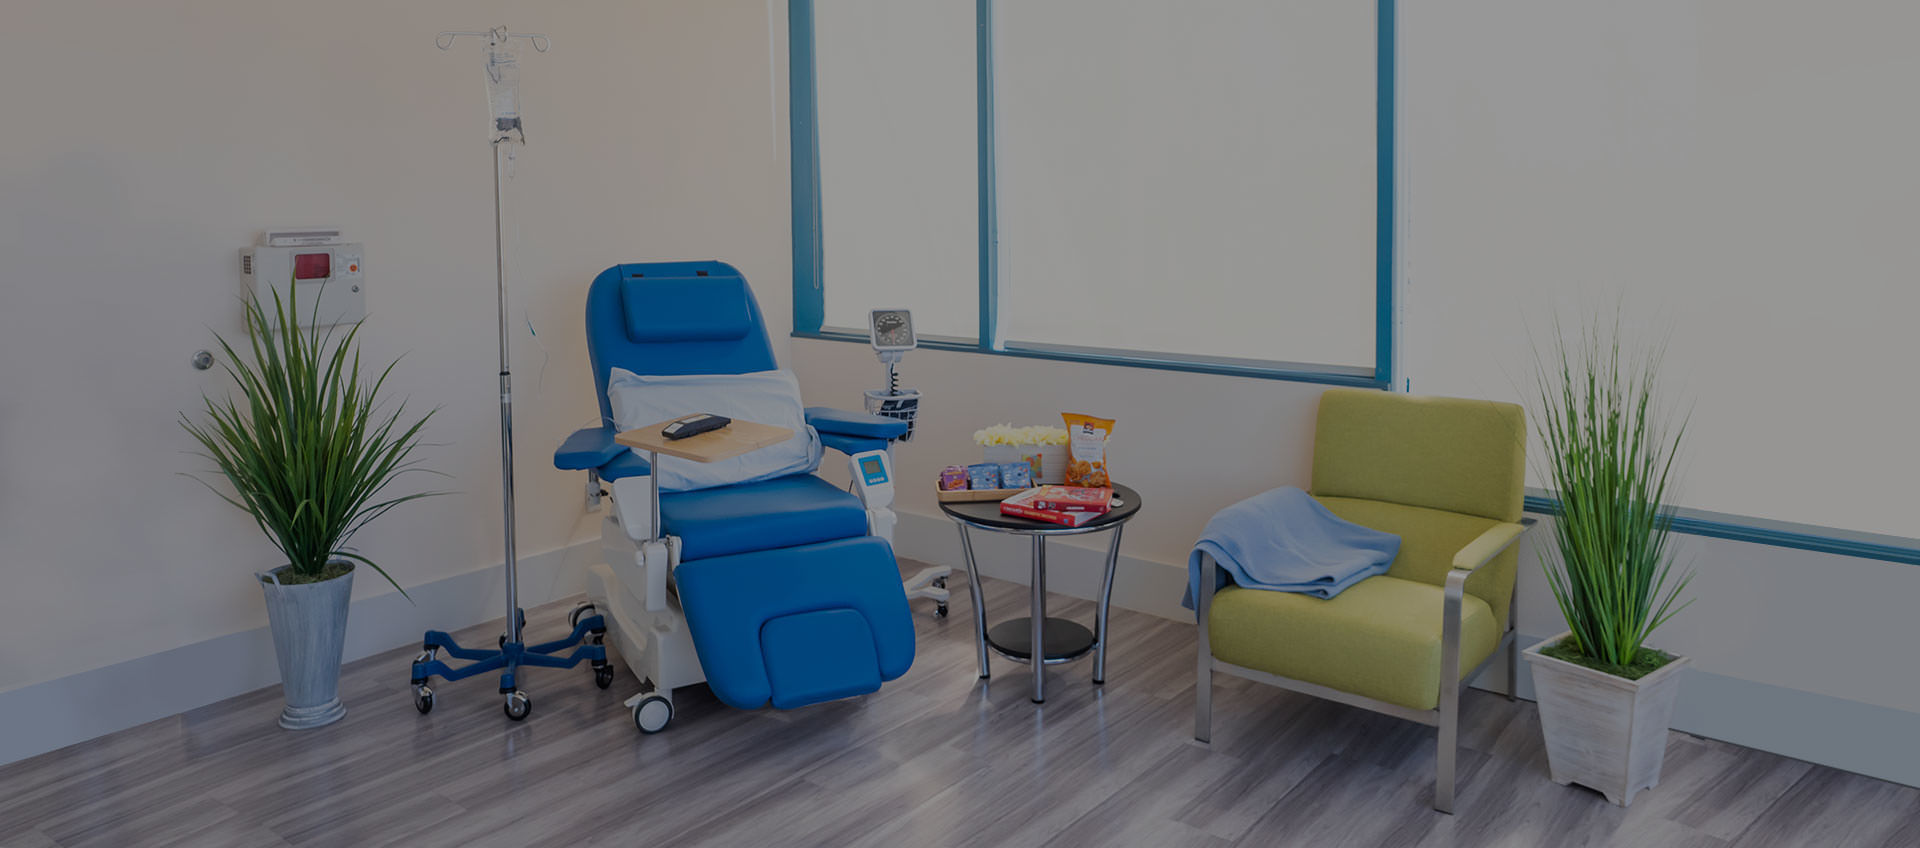 State-of-the-art infusion center suite with reclining infusion chair, guest chair, snacks, books and decoration